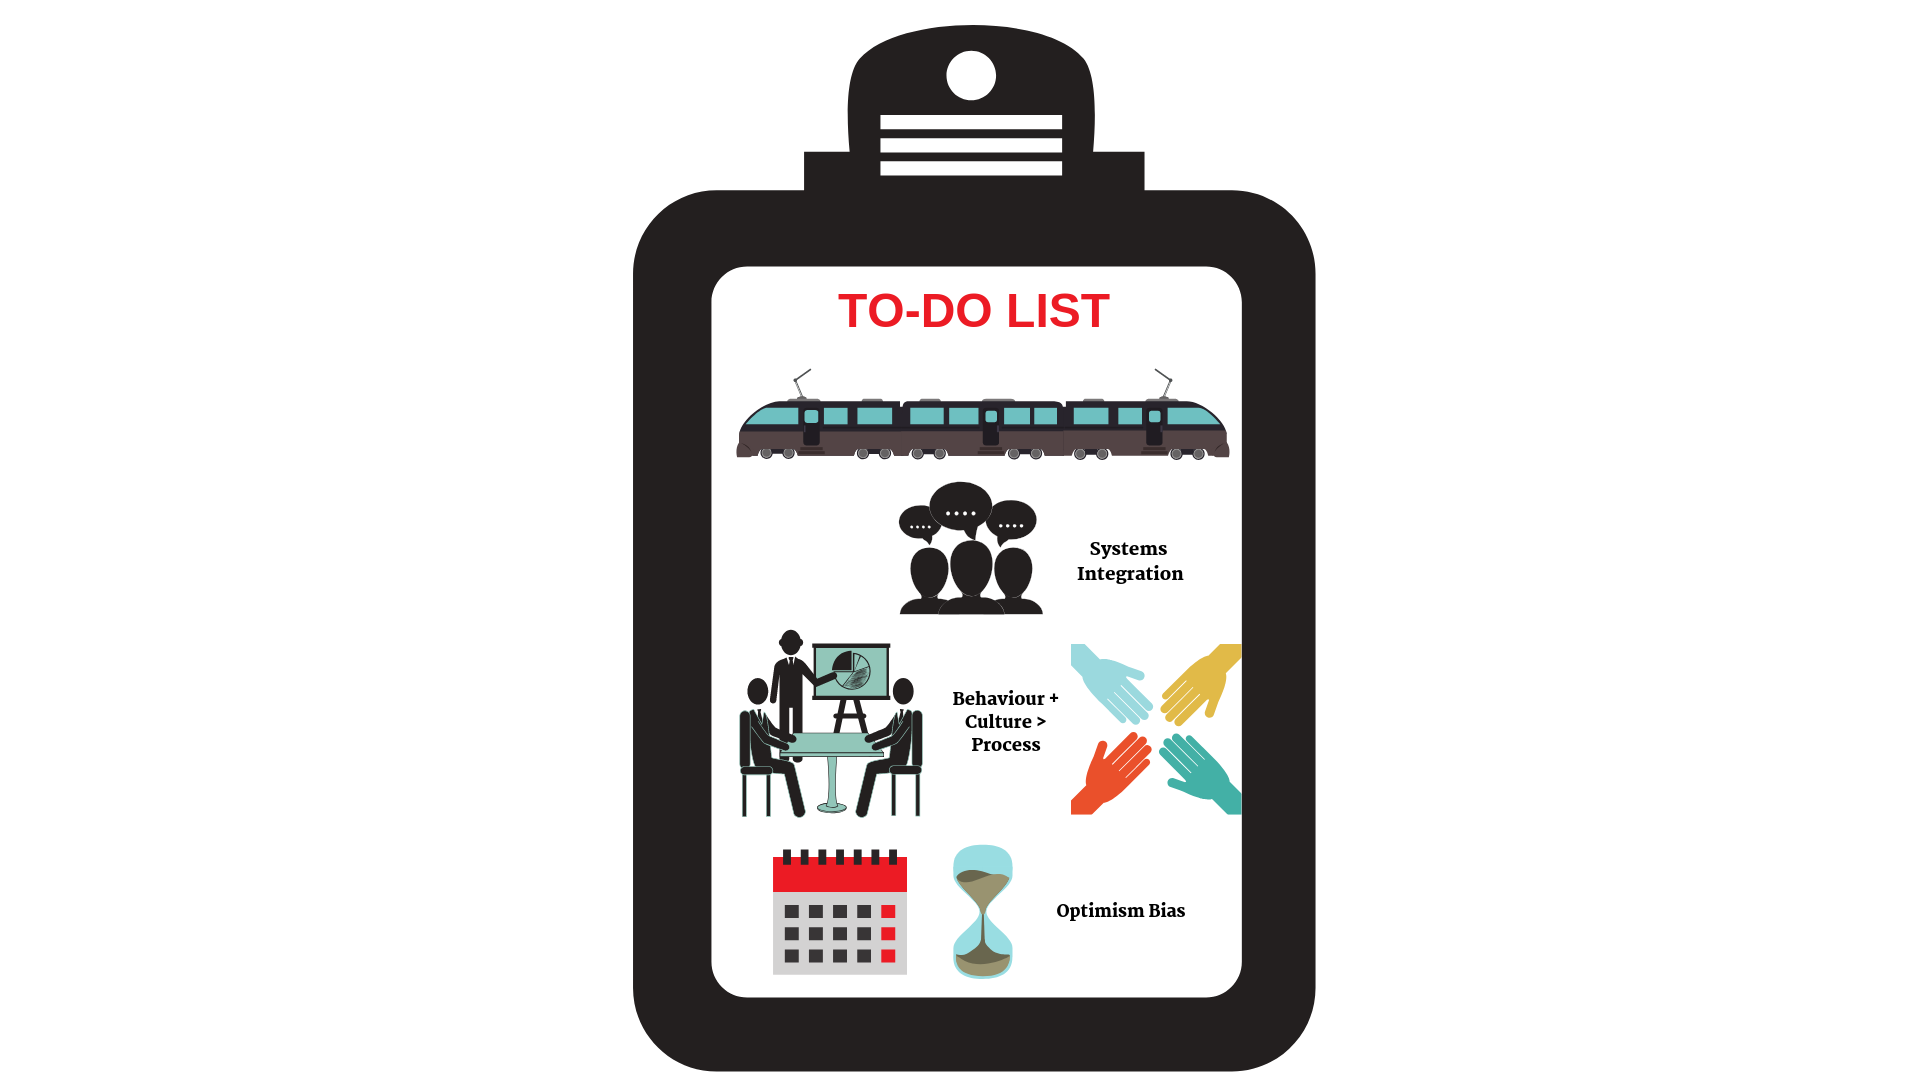 Infographic displaying a to-do list with systems integration , behaviours and cultures and optimism bias.